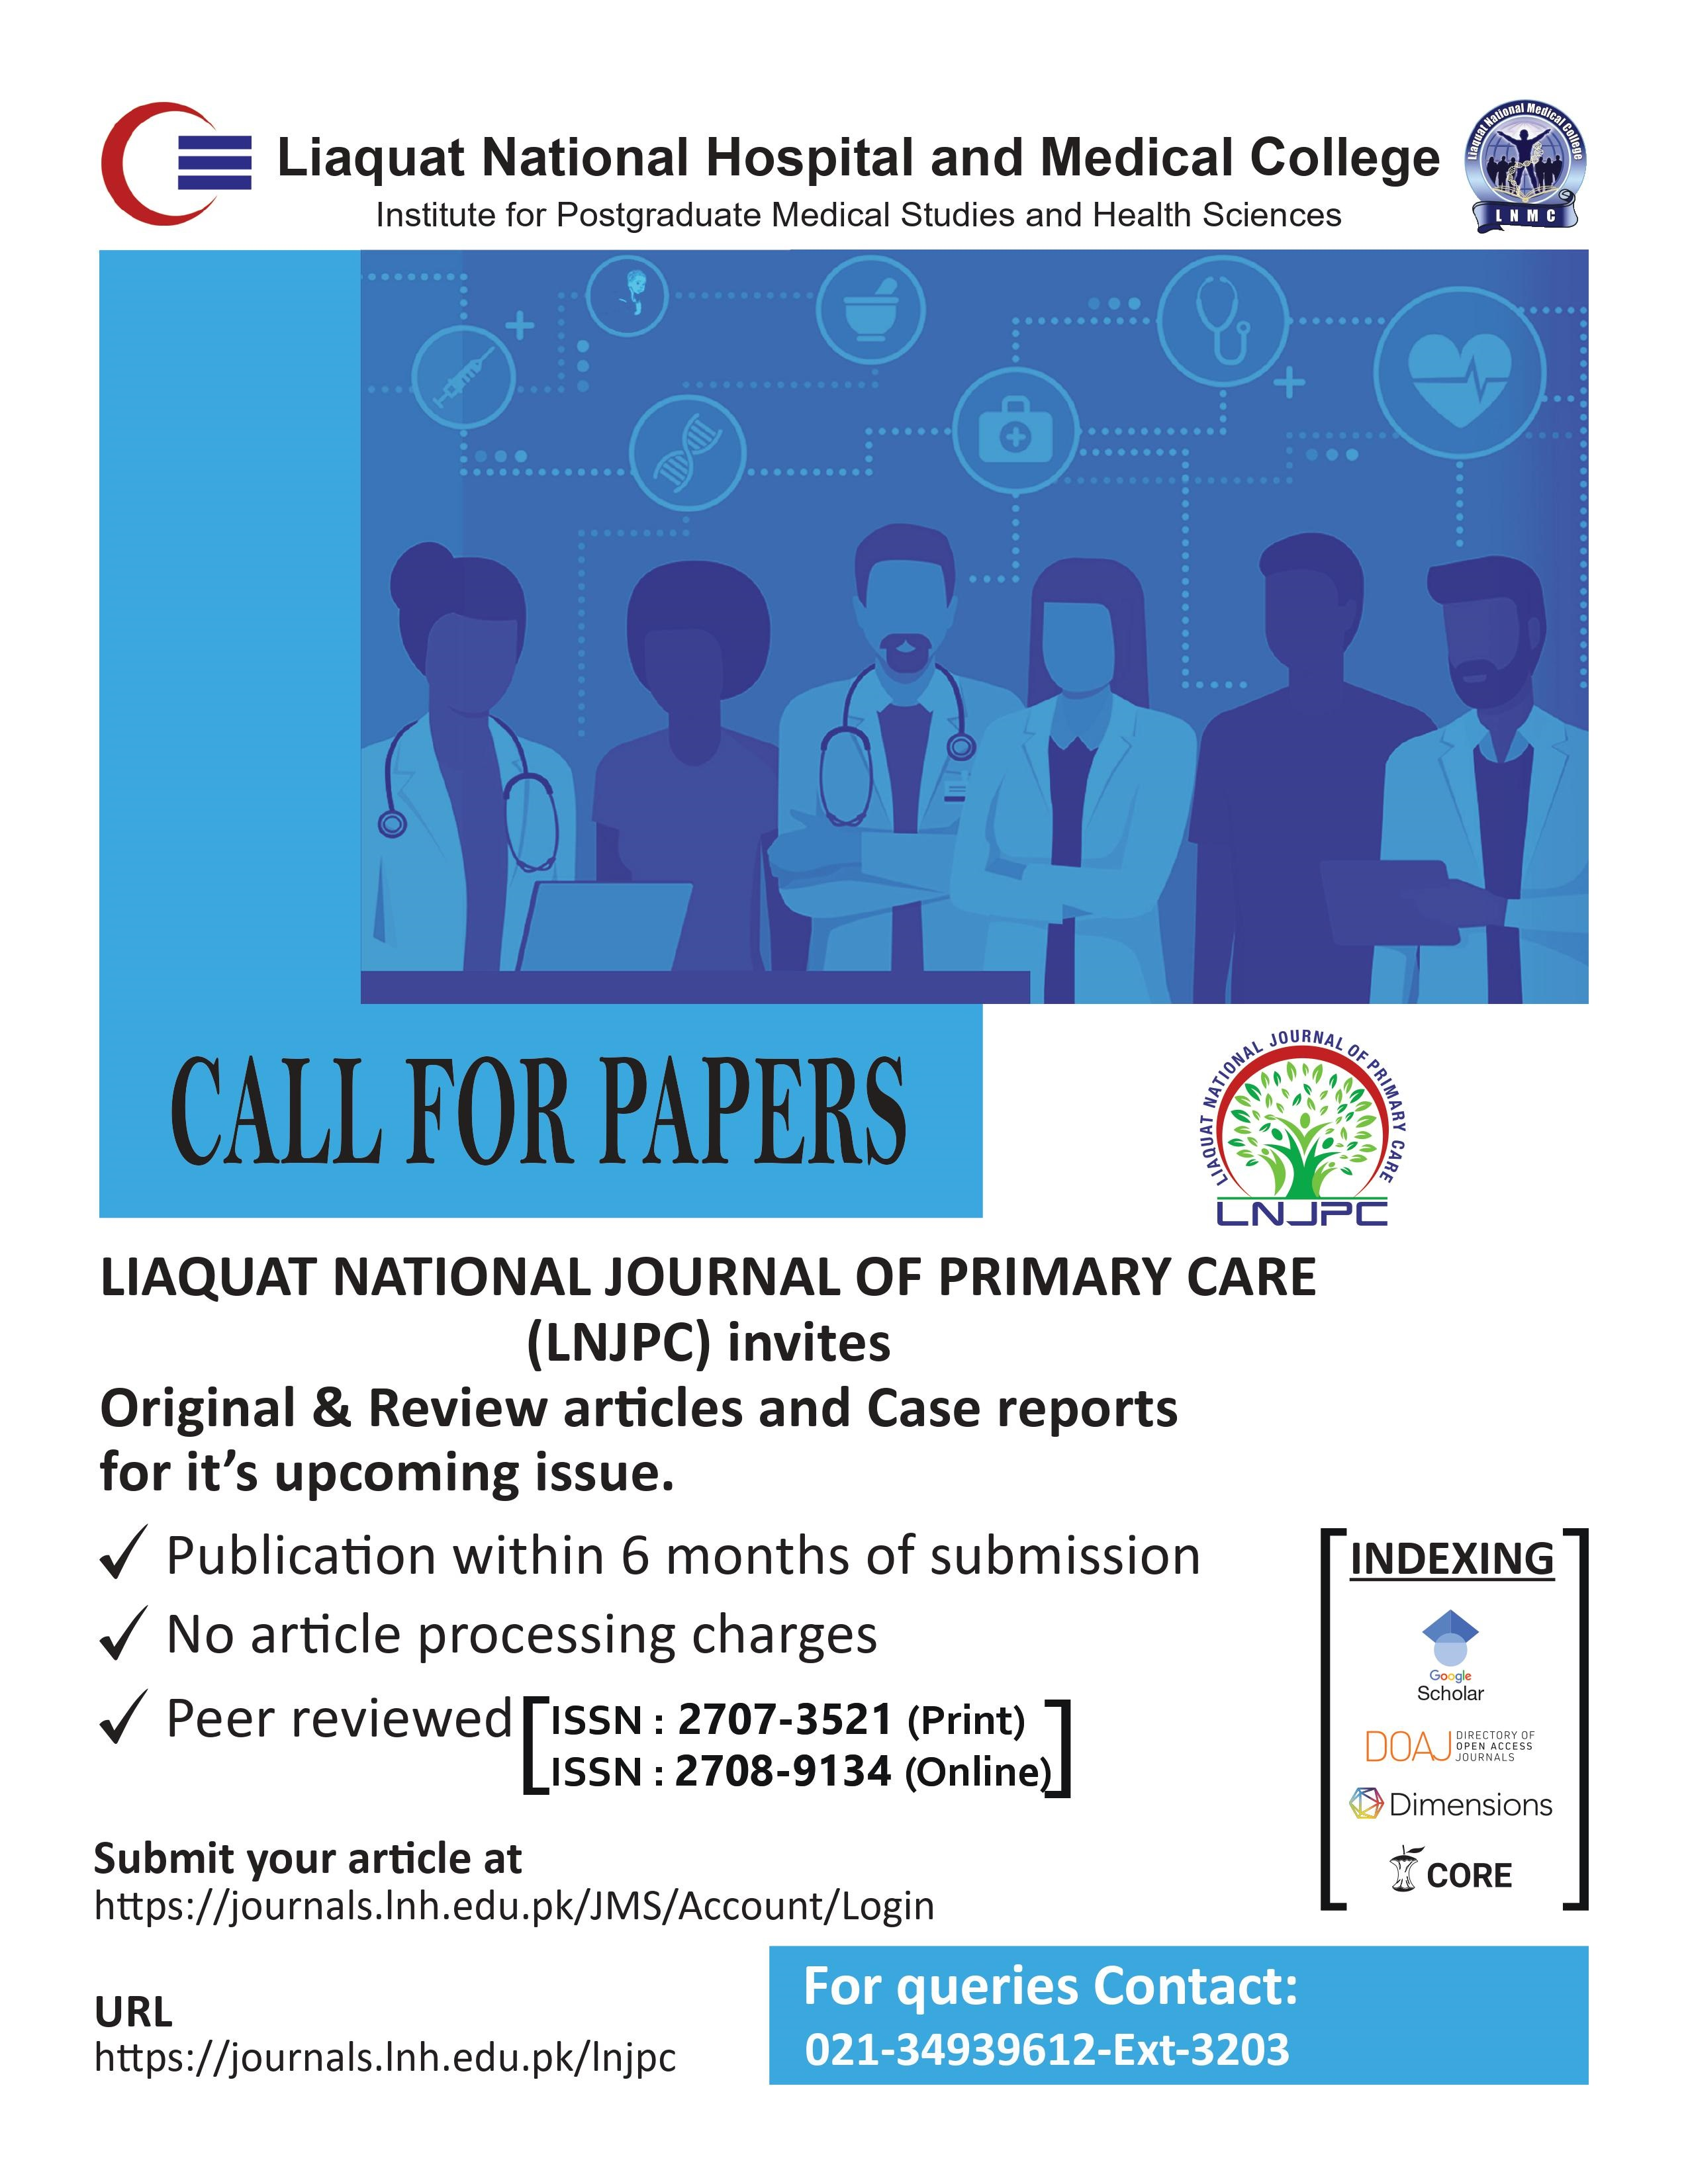 Liaquat National Journal of Primary Care